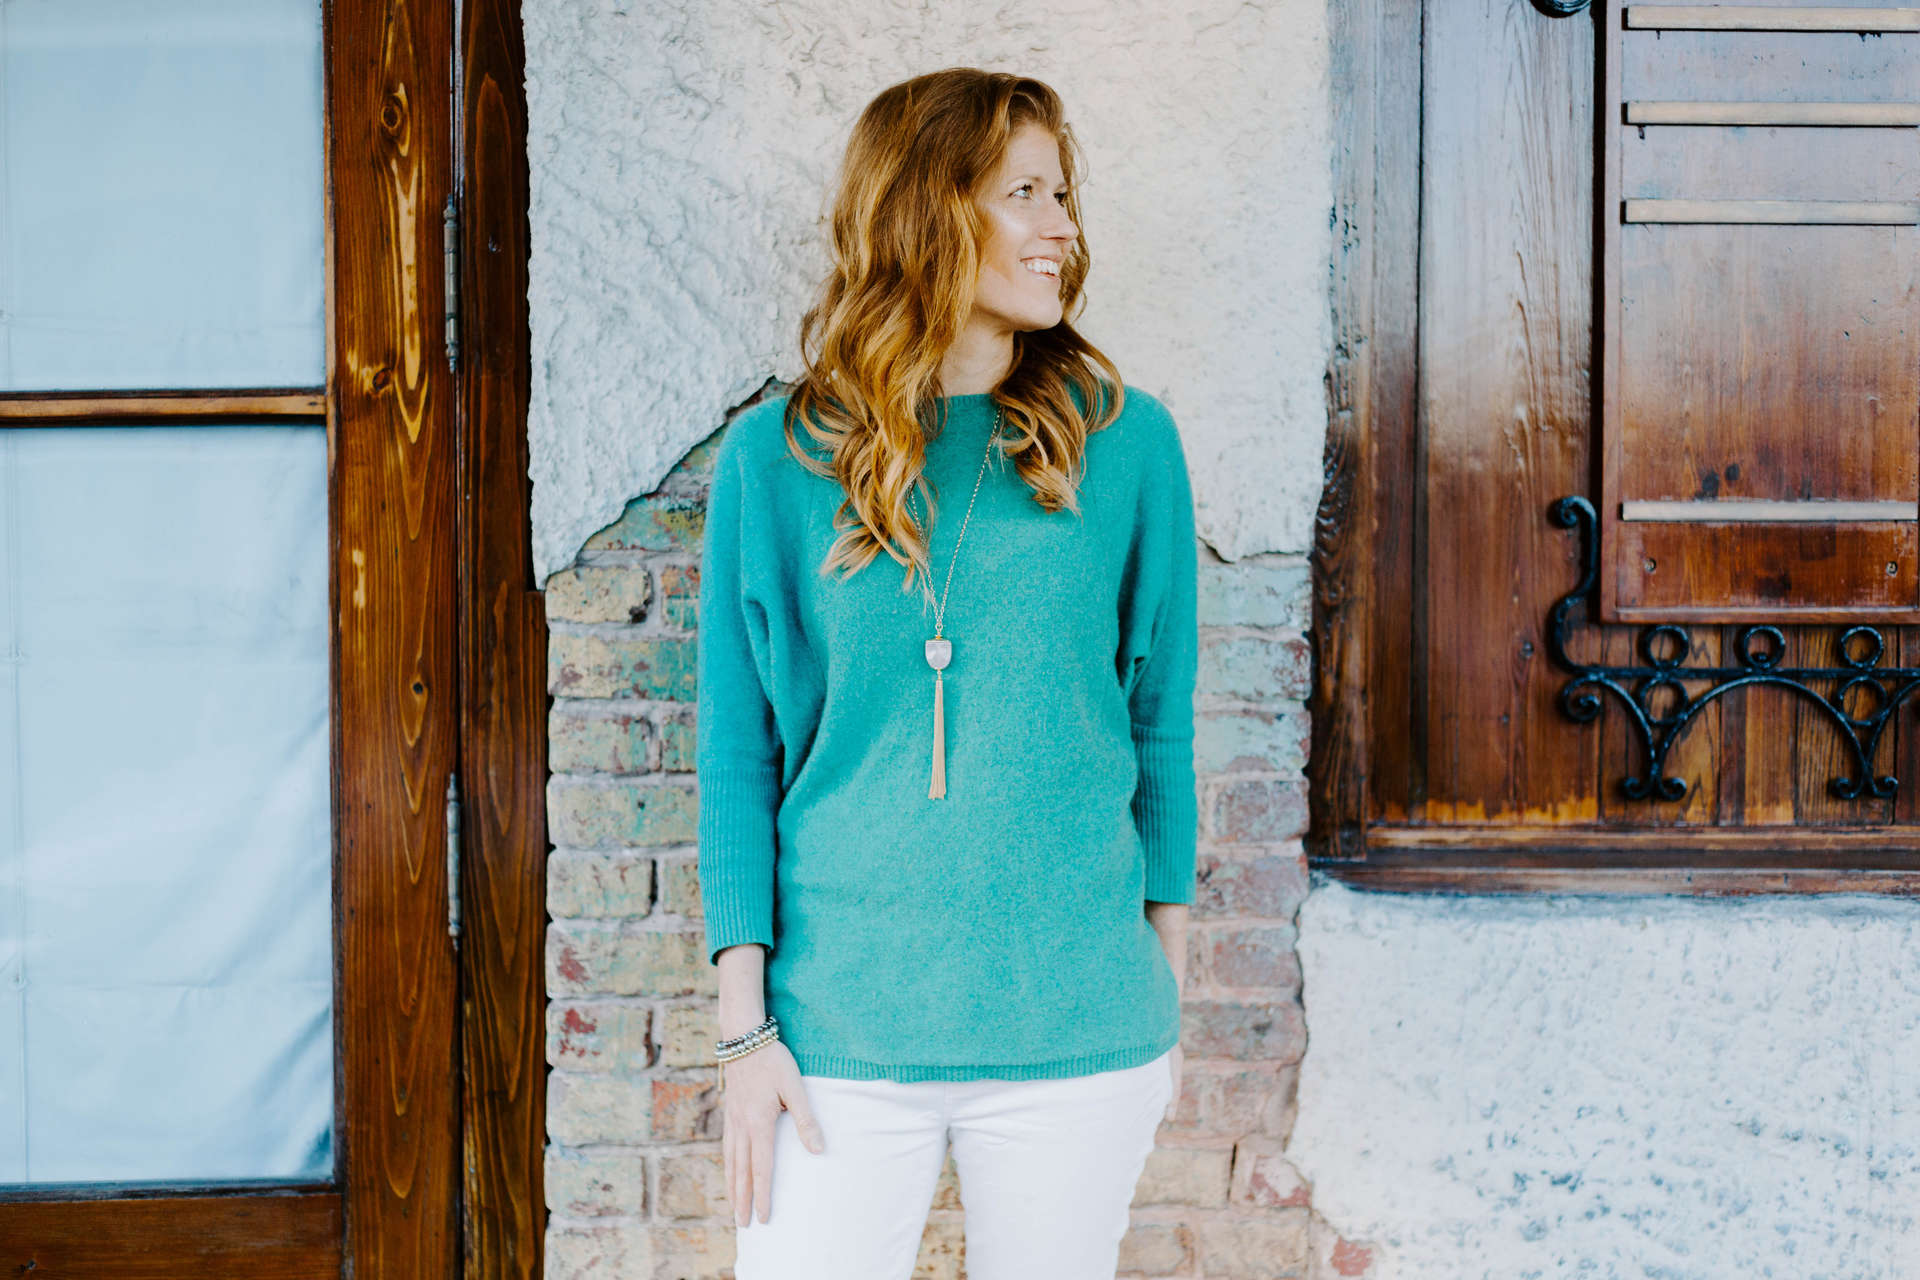 Mary Bielski in a teal shirt, up against a white wall